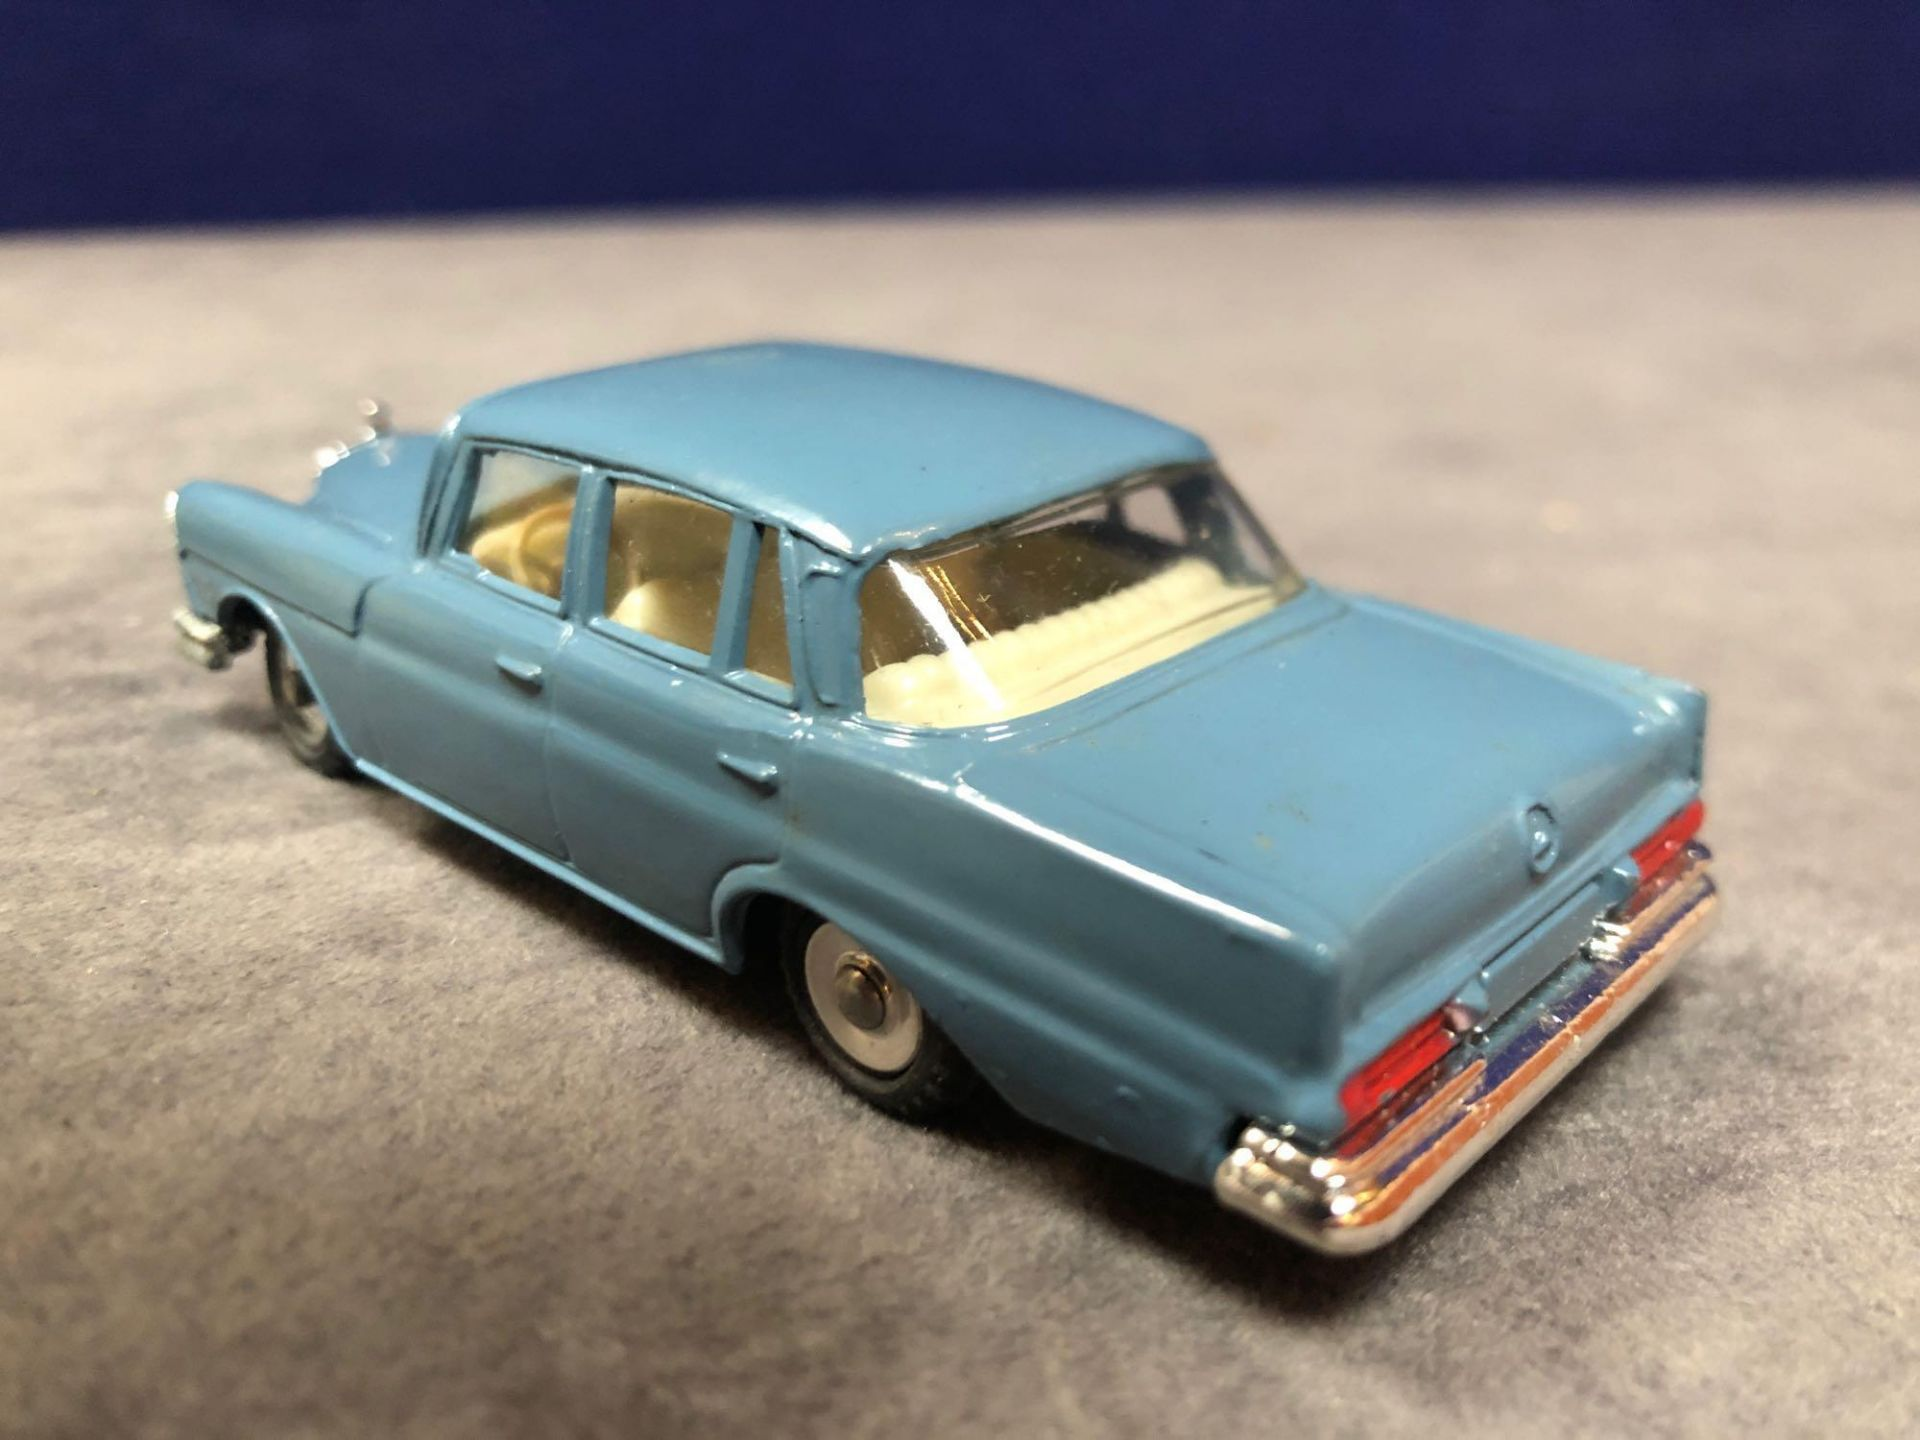 Dinky #186 Mercedes-Benz 220 SE Blue - Petrol Blue Body With White Interior. Spun Hubs. Mint in - Image 3 of 4